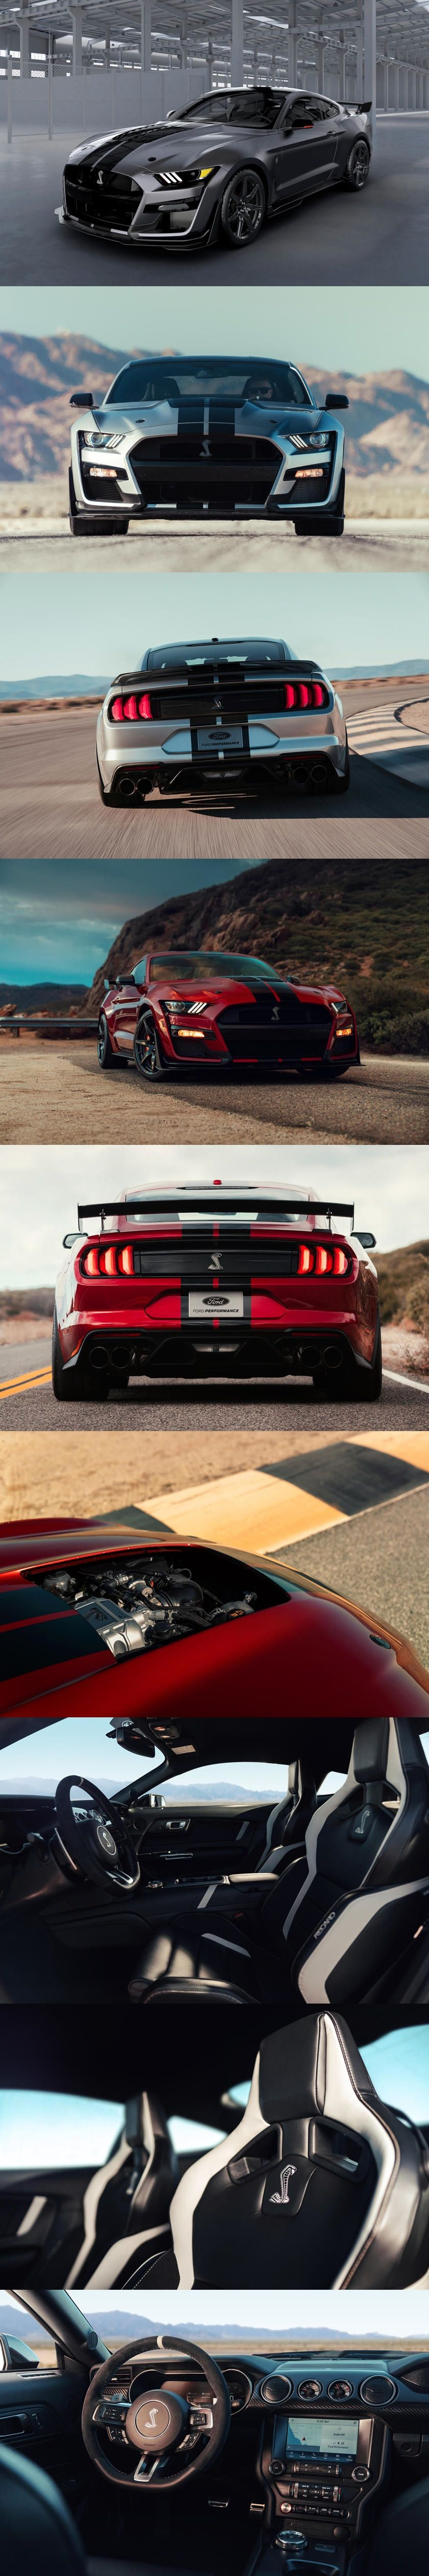 760 Hp Ford Mustang Shelby Gt500 Will Have A Supercar Price It Even Has A Unique Shade Of Venom M Ford Mustang Shelby Gt500 Mustang Shelby Ford Mustang Shelby